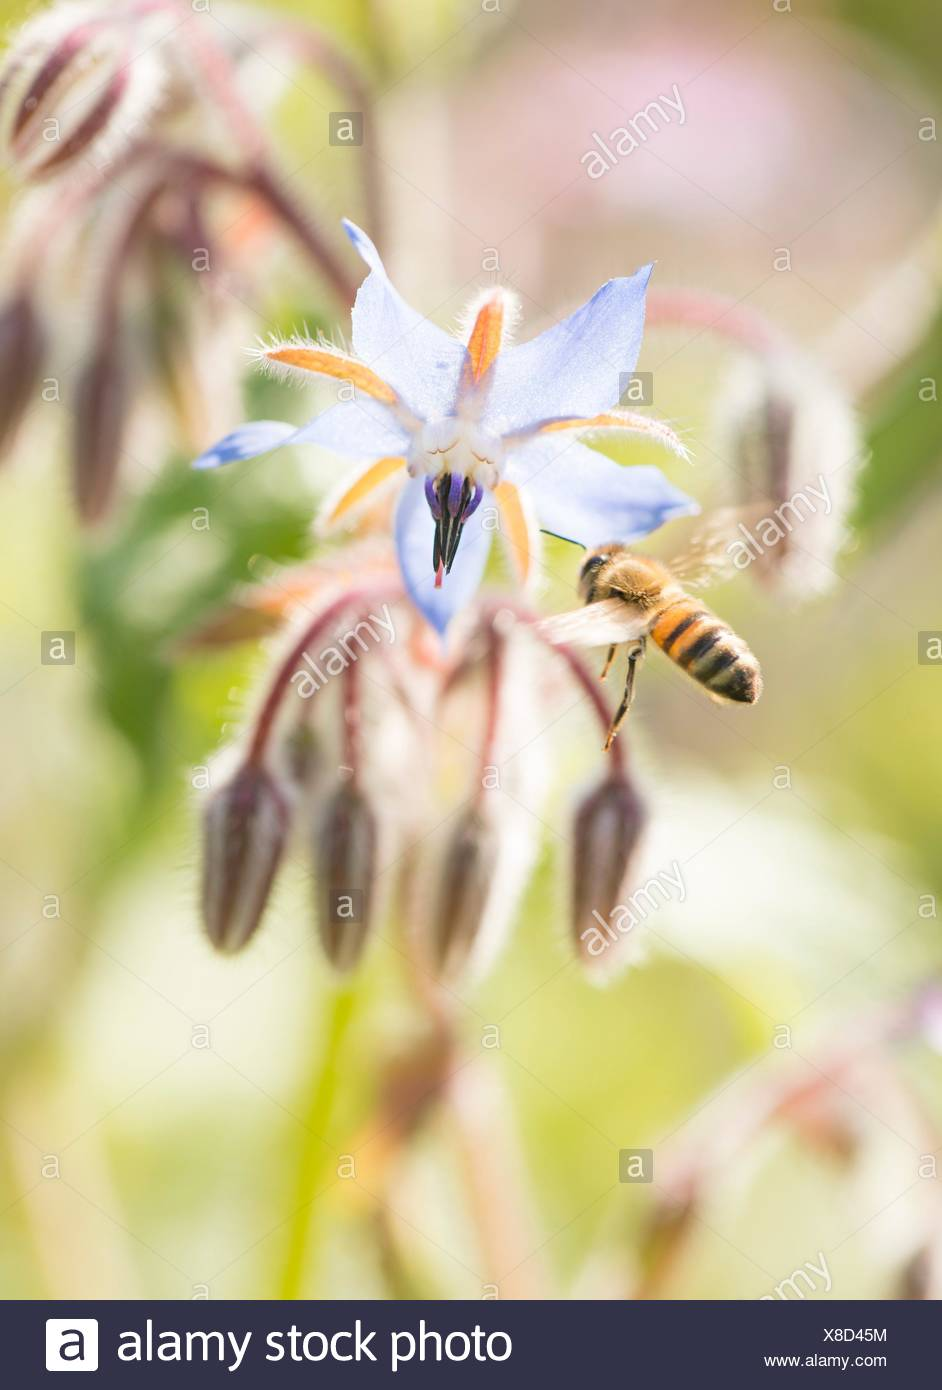 Bee close up. Beautiful summer nature detail with pollination of flower in garden. Concept of making honey, ecosystem and insect wildlife. - Stock Image